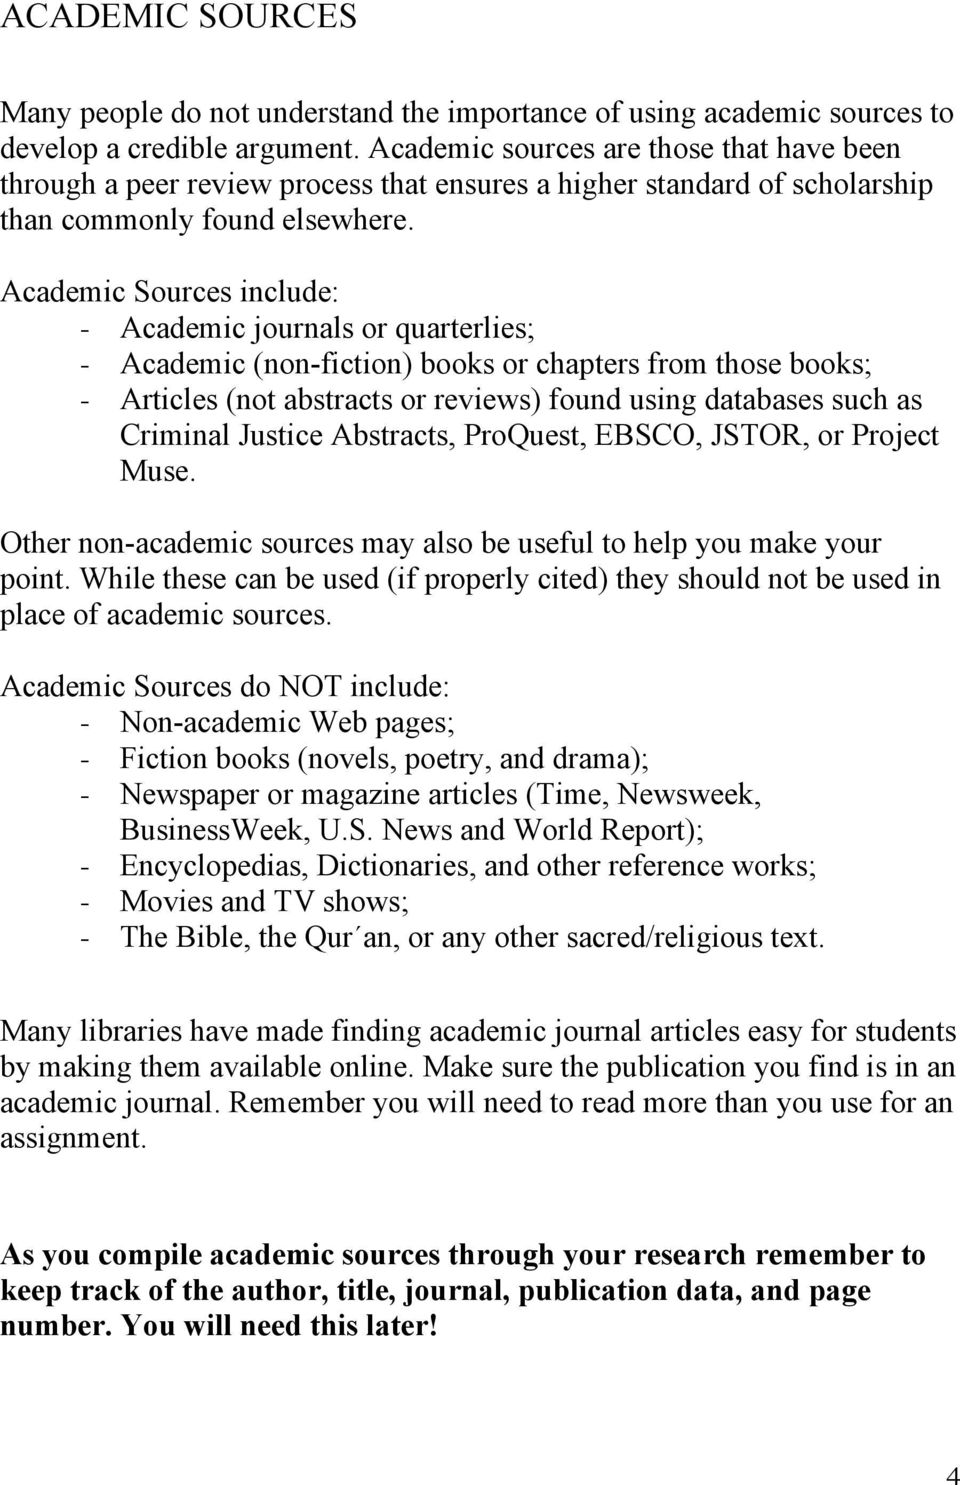 Academic Sources include: - Academic journals or quarterlies; - Academic (non-fiction) books or chapters from those books; - Articles (not abstracts or reviews) found using databases such as Criminal